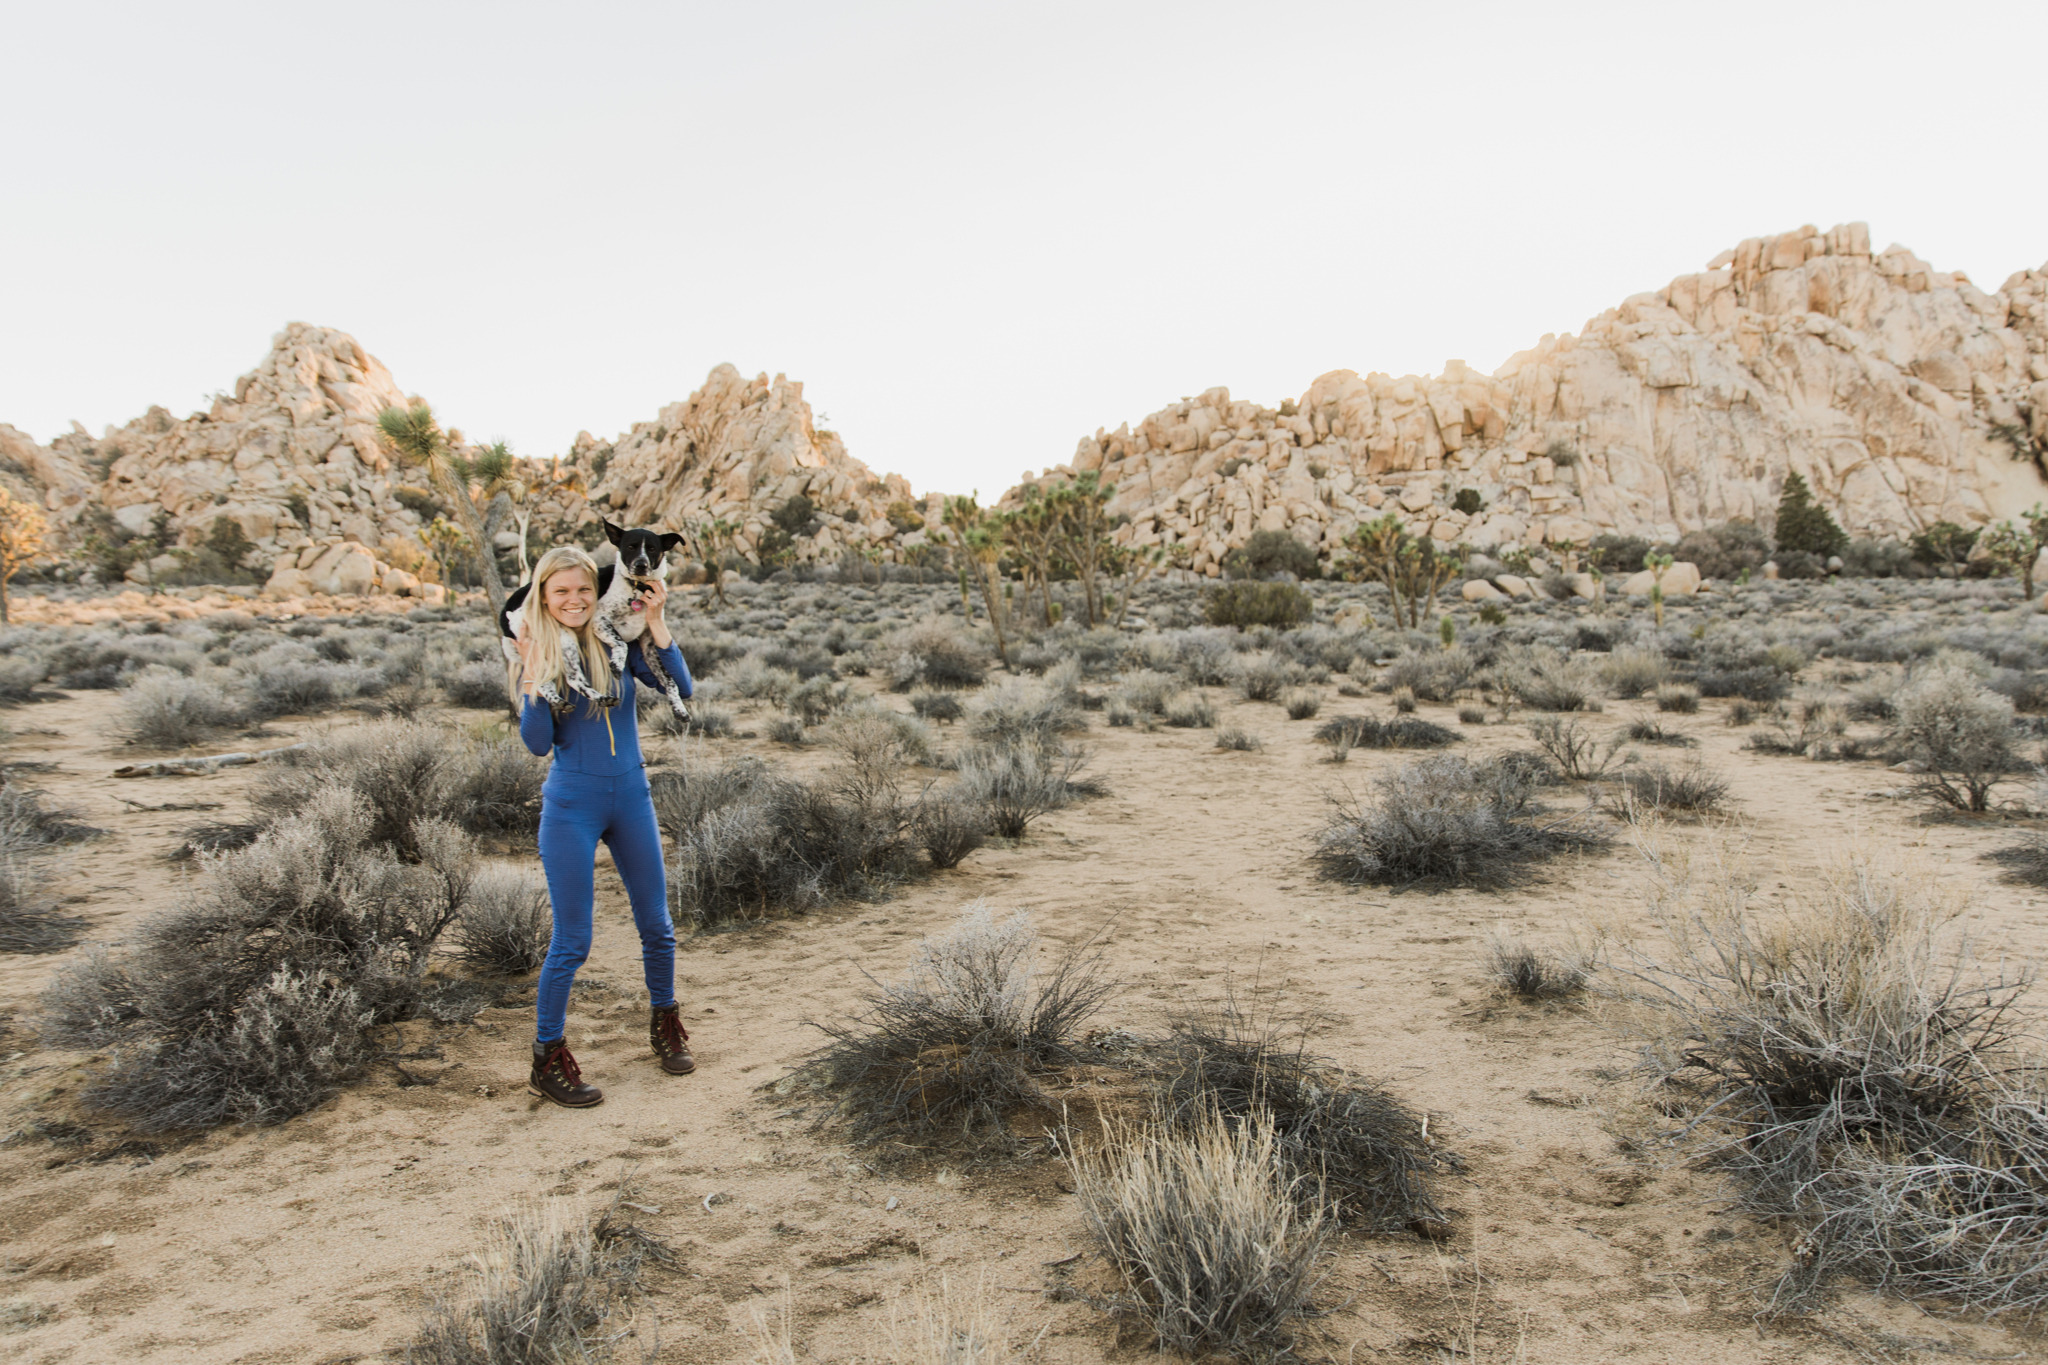 camping in joshua tree national park | utah and california adventure elopement photographers | the hearnes adventure photography | www.thehearnes.com